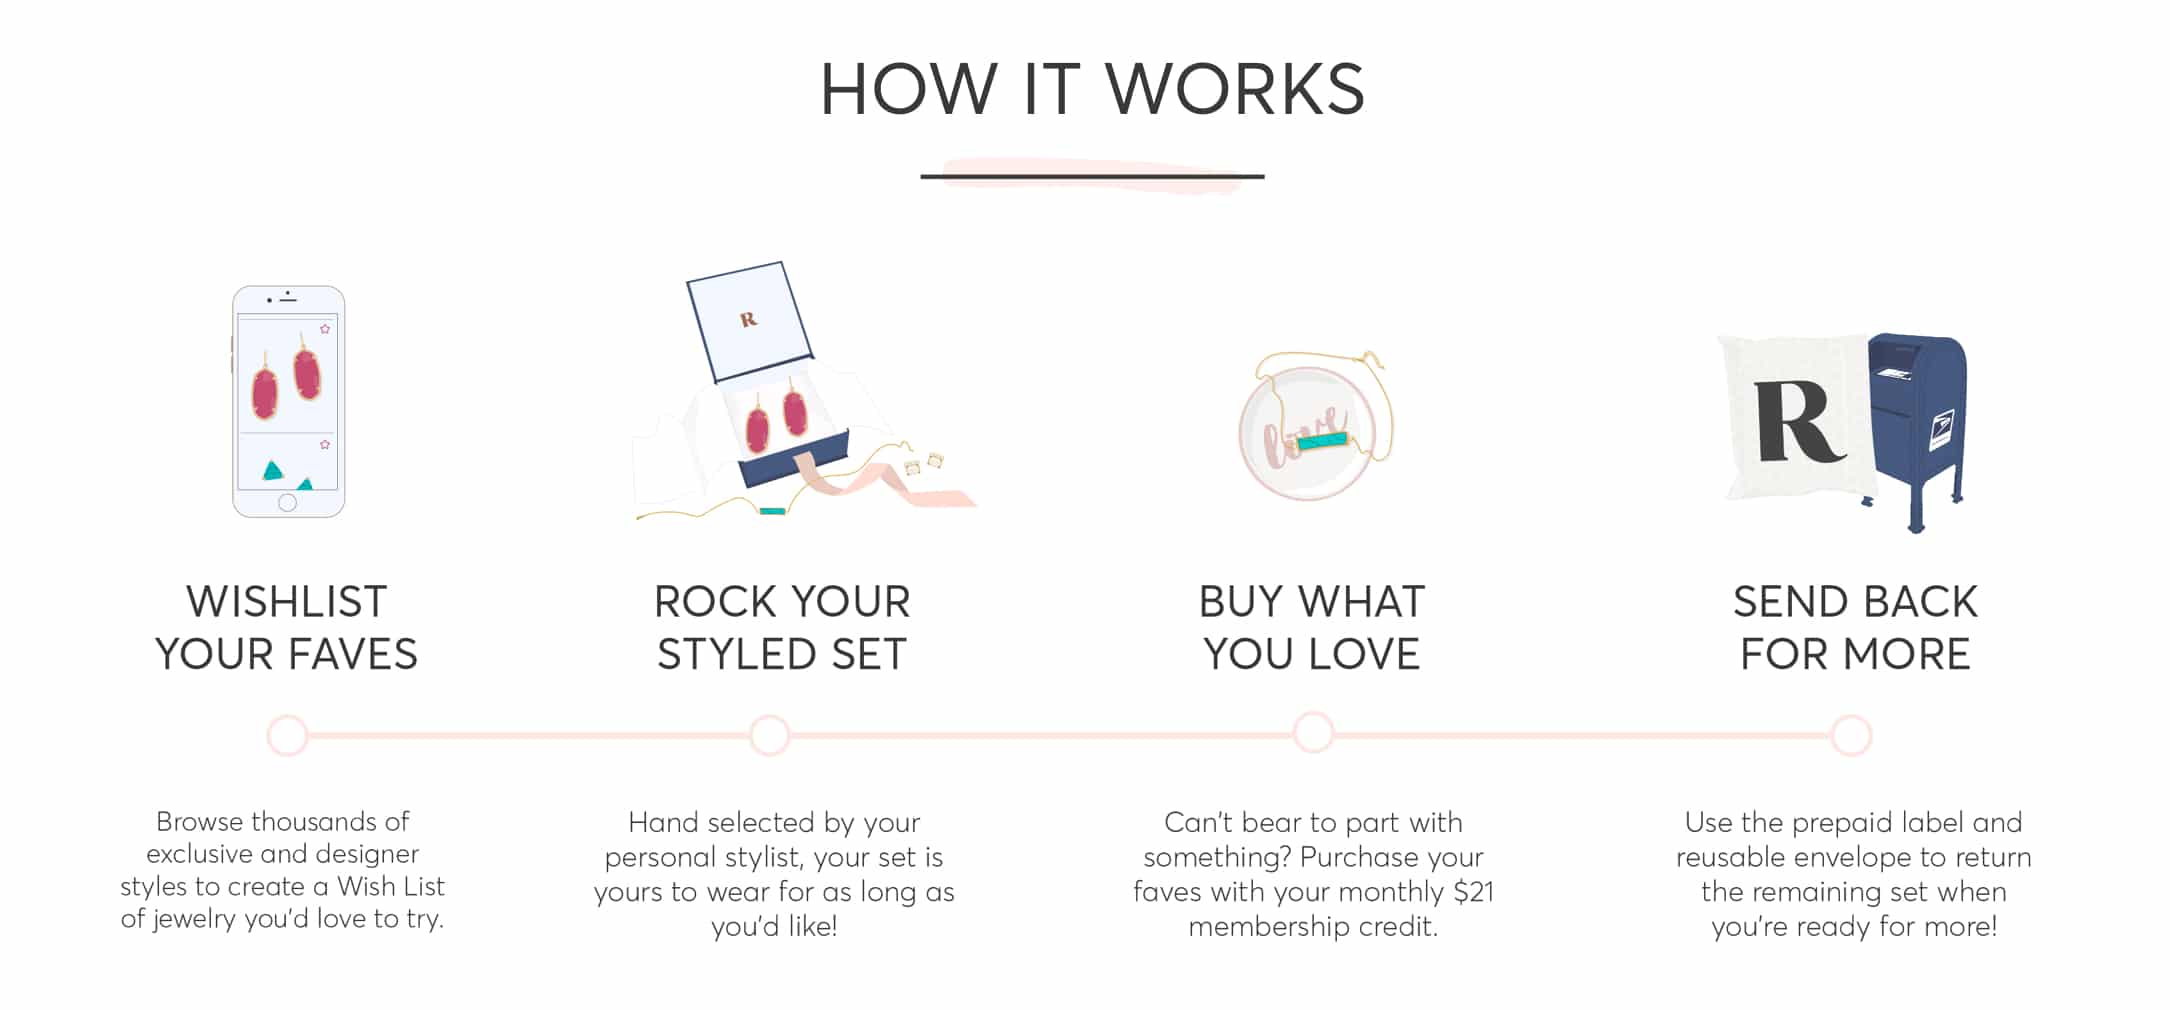 Rocksbox Reviews - How It Works